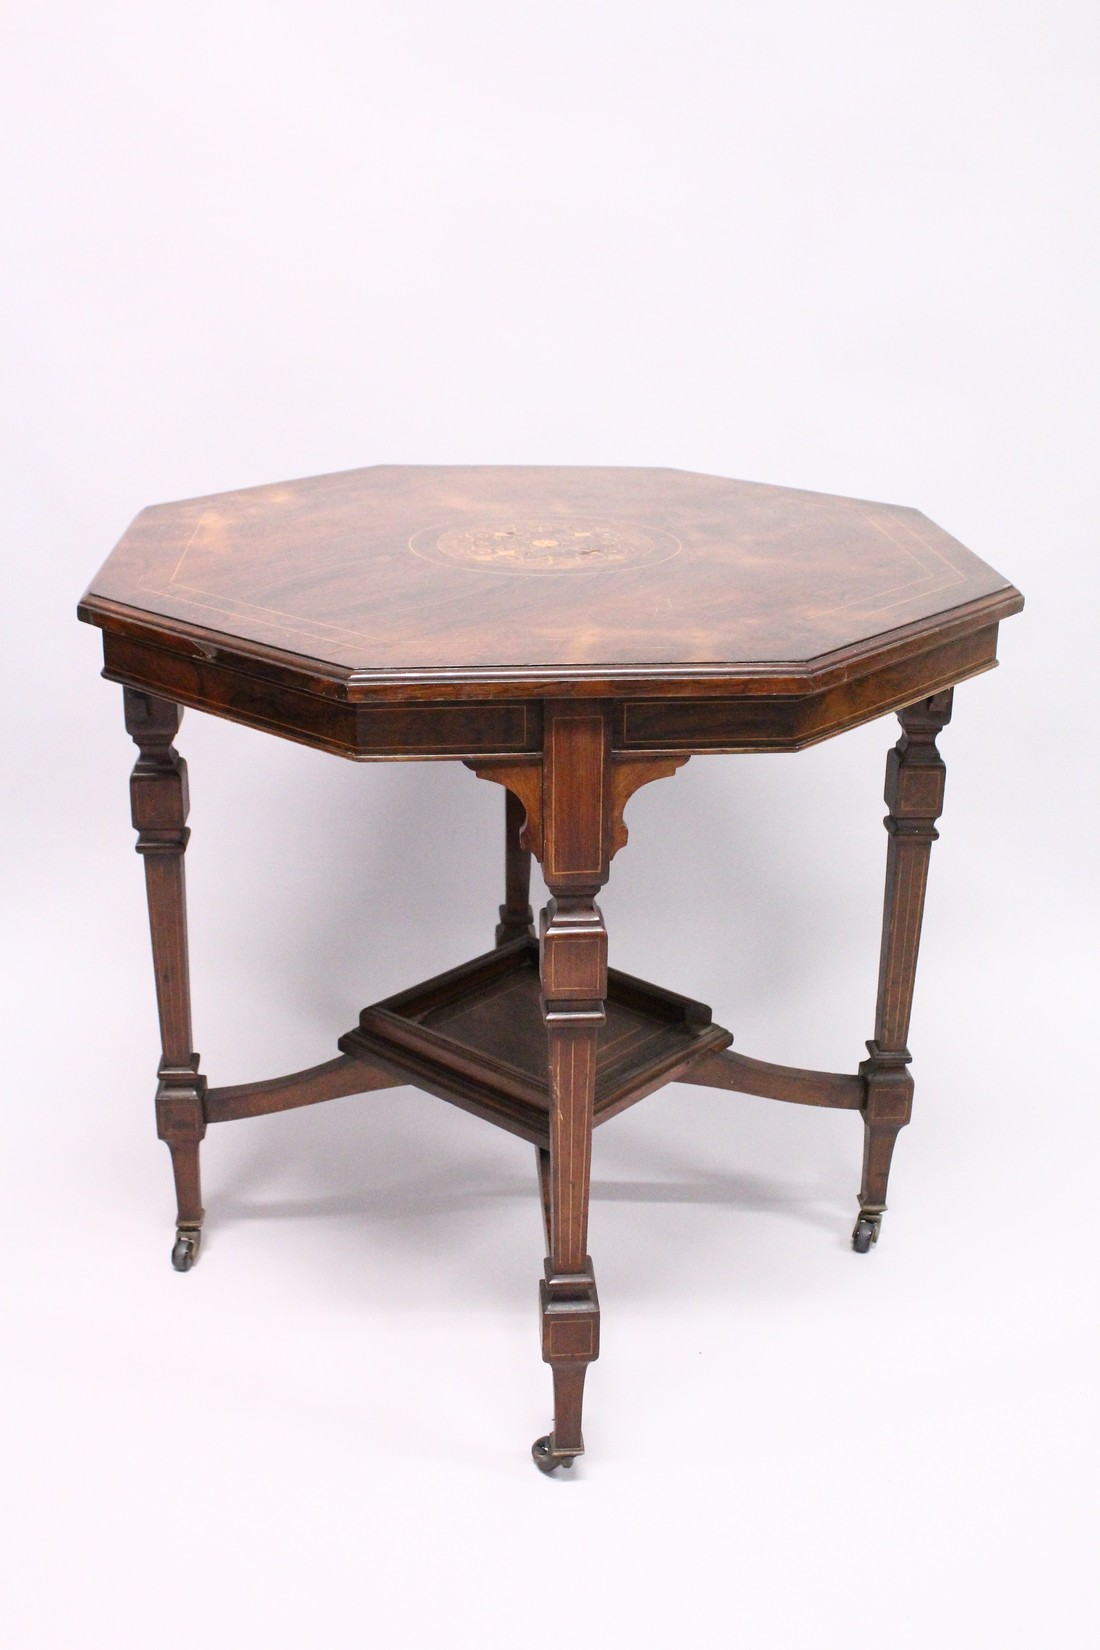 A GOOD VICTORIAN ROSEWOOD OCTAGONAL CENTRE TABLE with inlaid top, tapering legs with casters and - Image 5 of 5